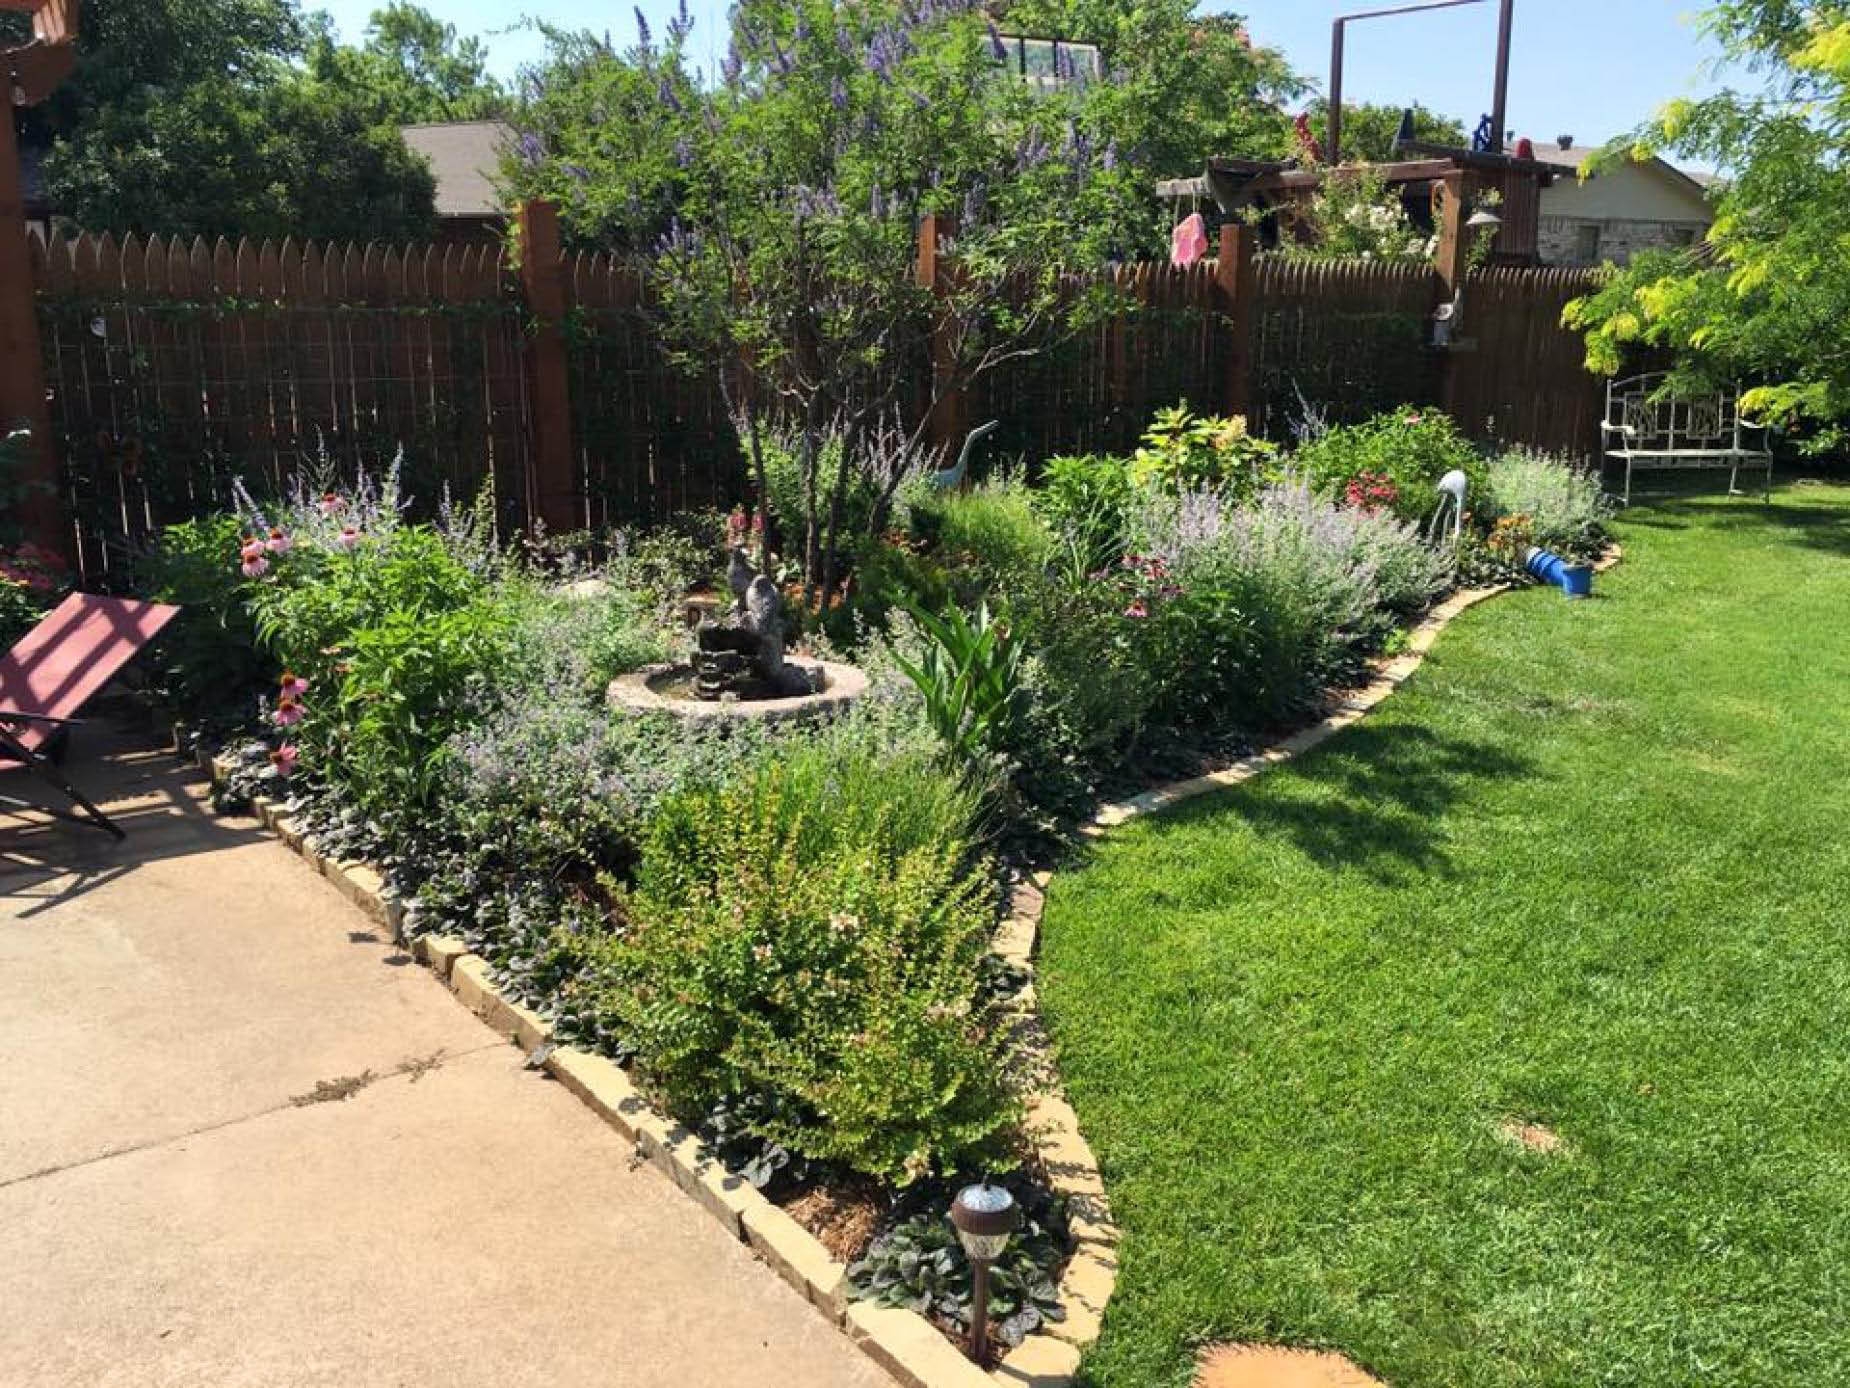 All types of landscaping, plant care, irrigation systems near Mustang, OK